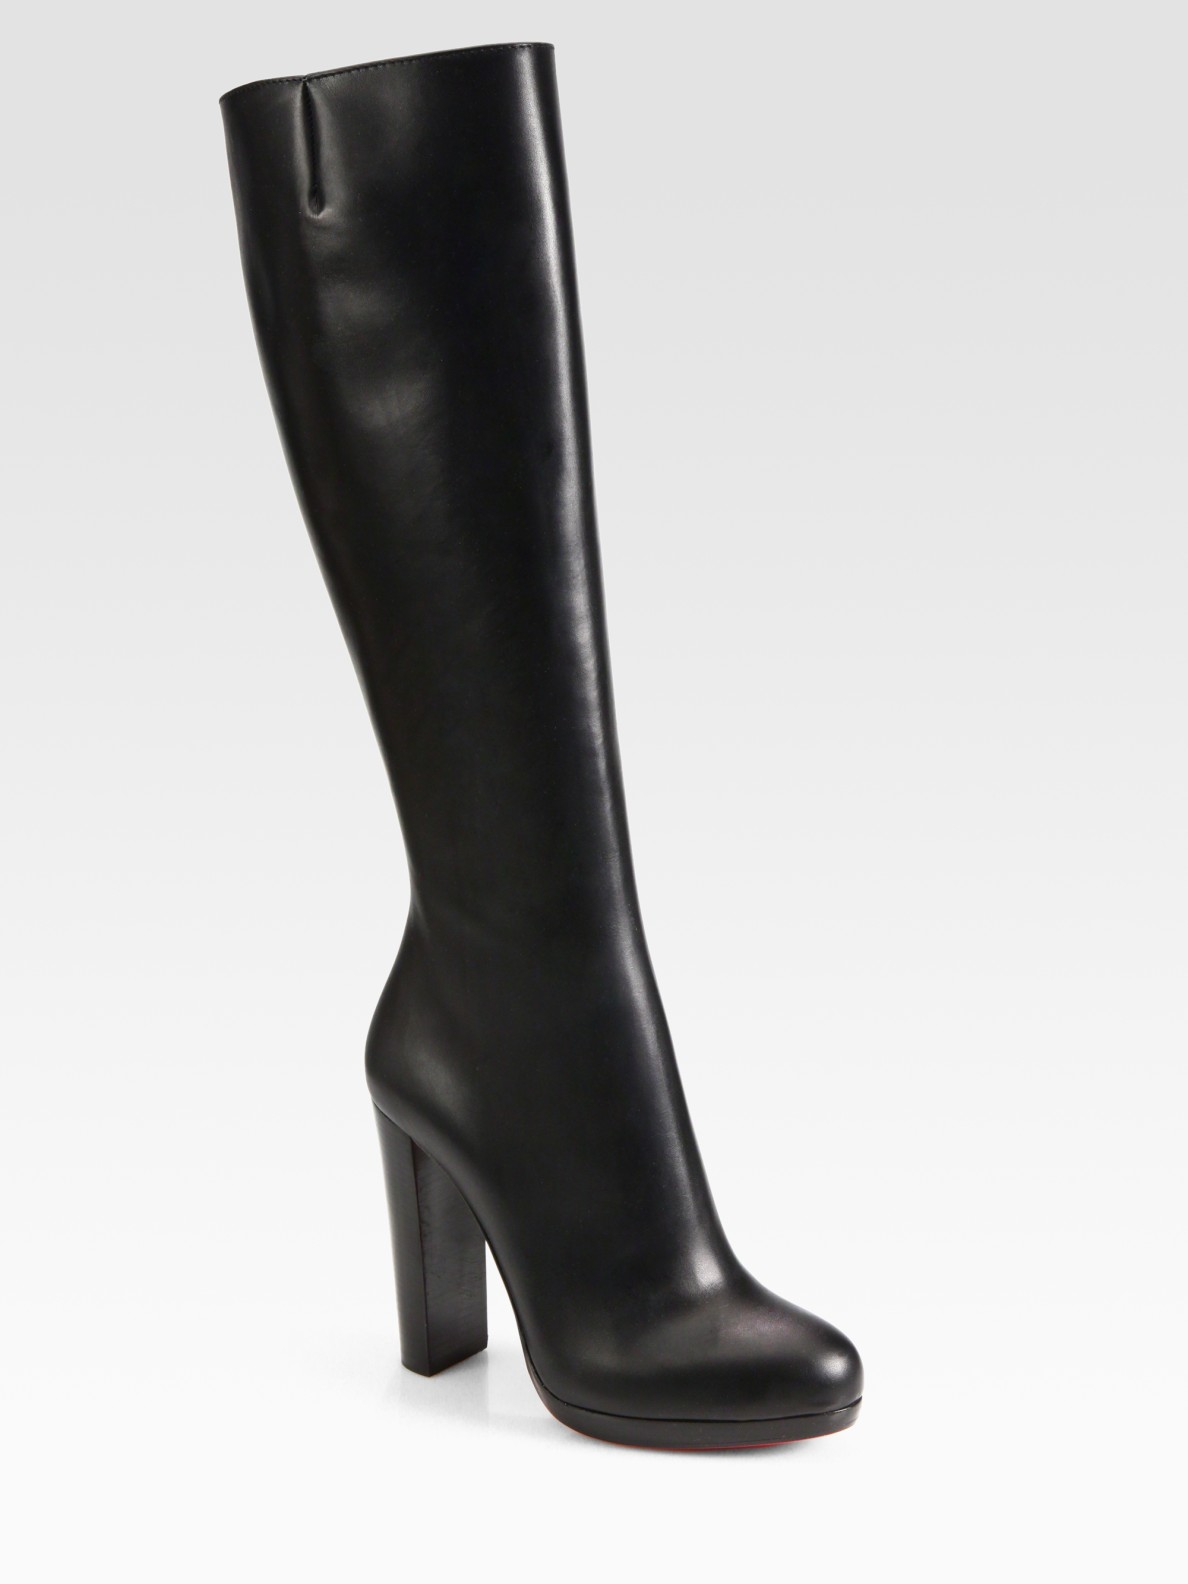 Christian Louboutin Leather Knee High Boots In Black Lyst